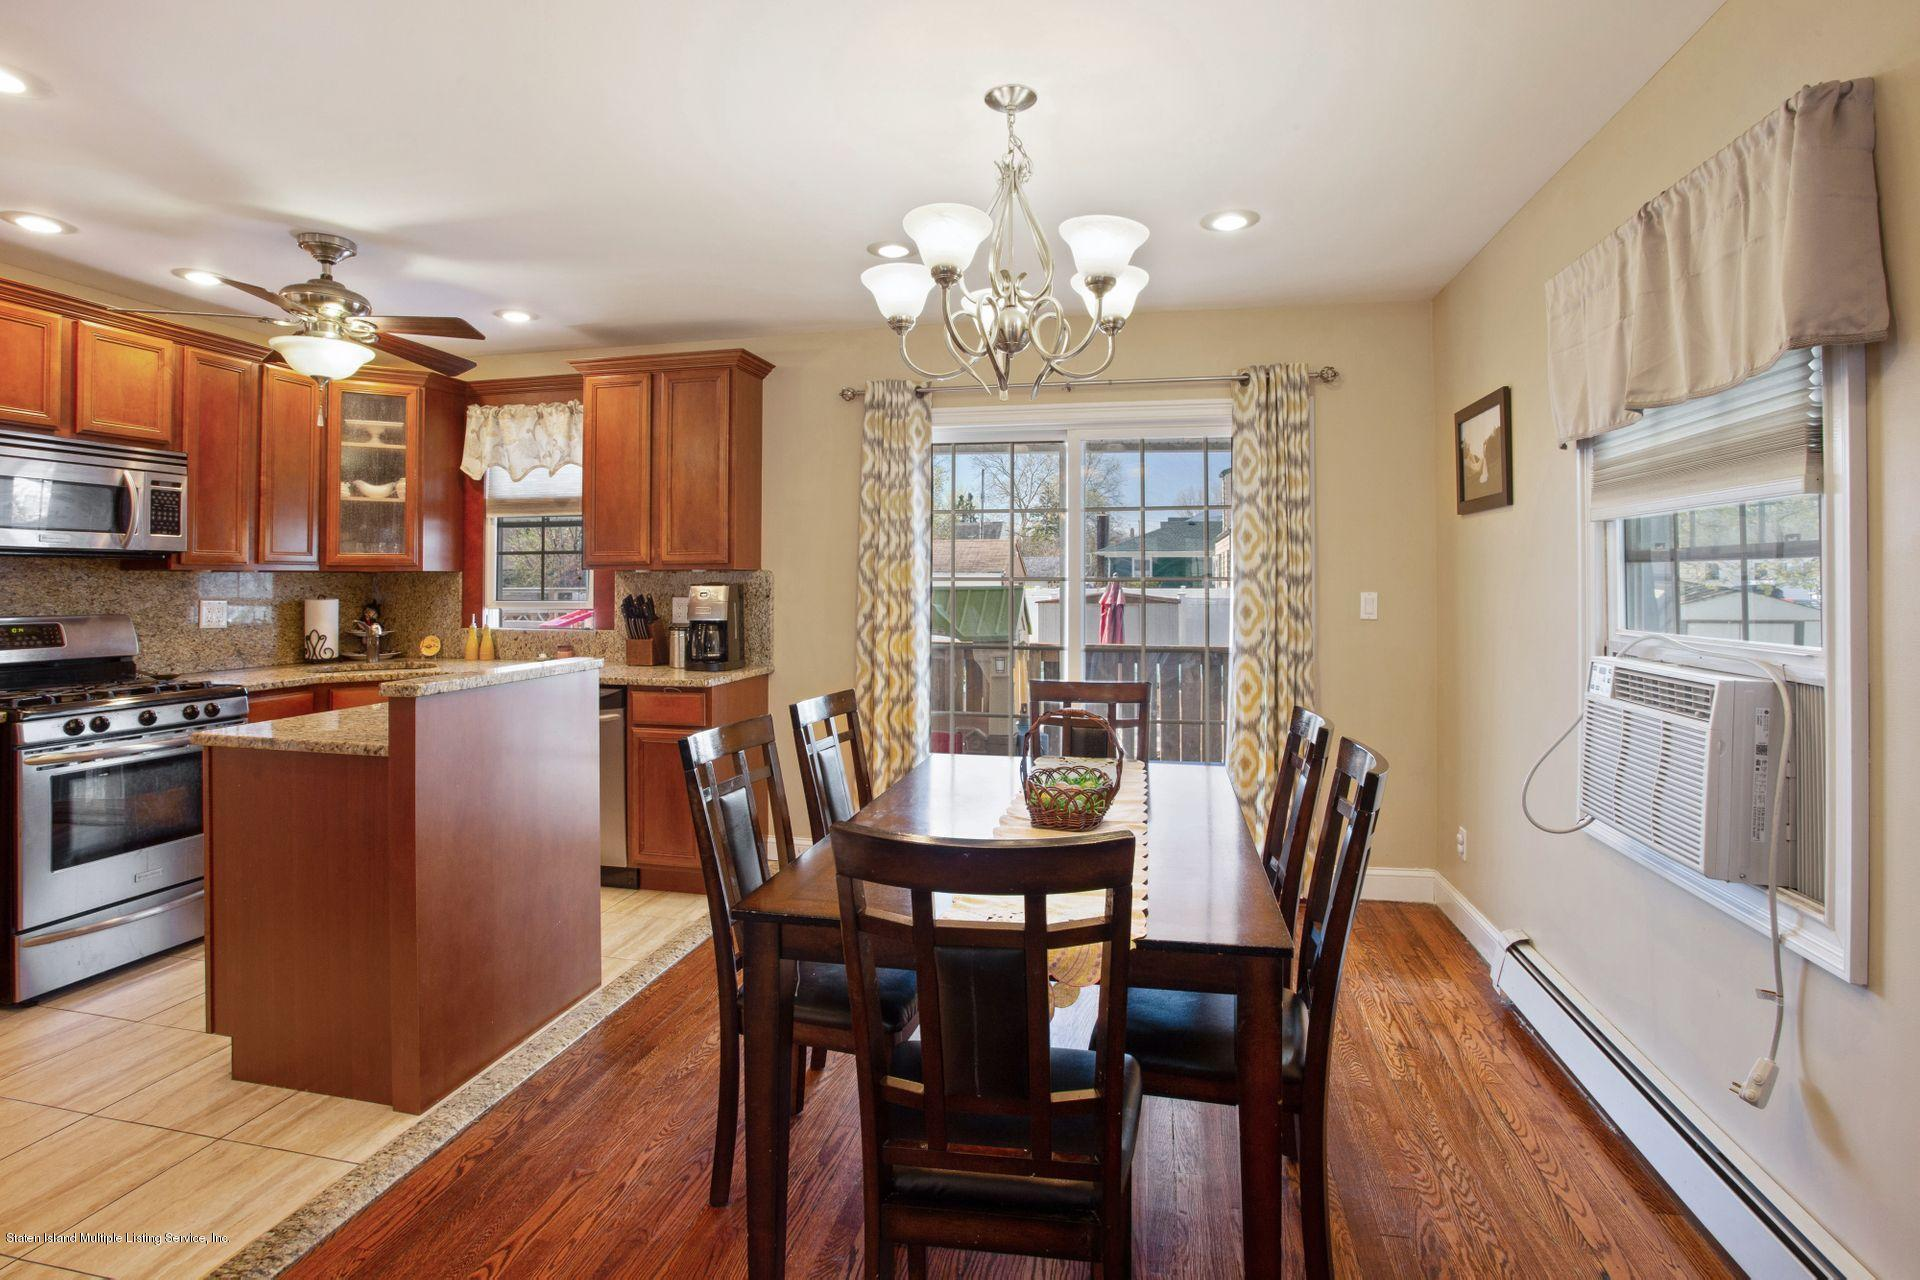 Single Family - Detached 252 Waters Avenue  Staten Island, NY 10314, MLS-1128050-13